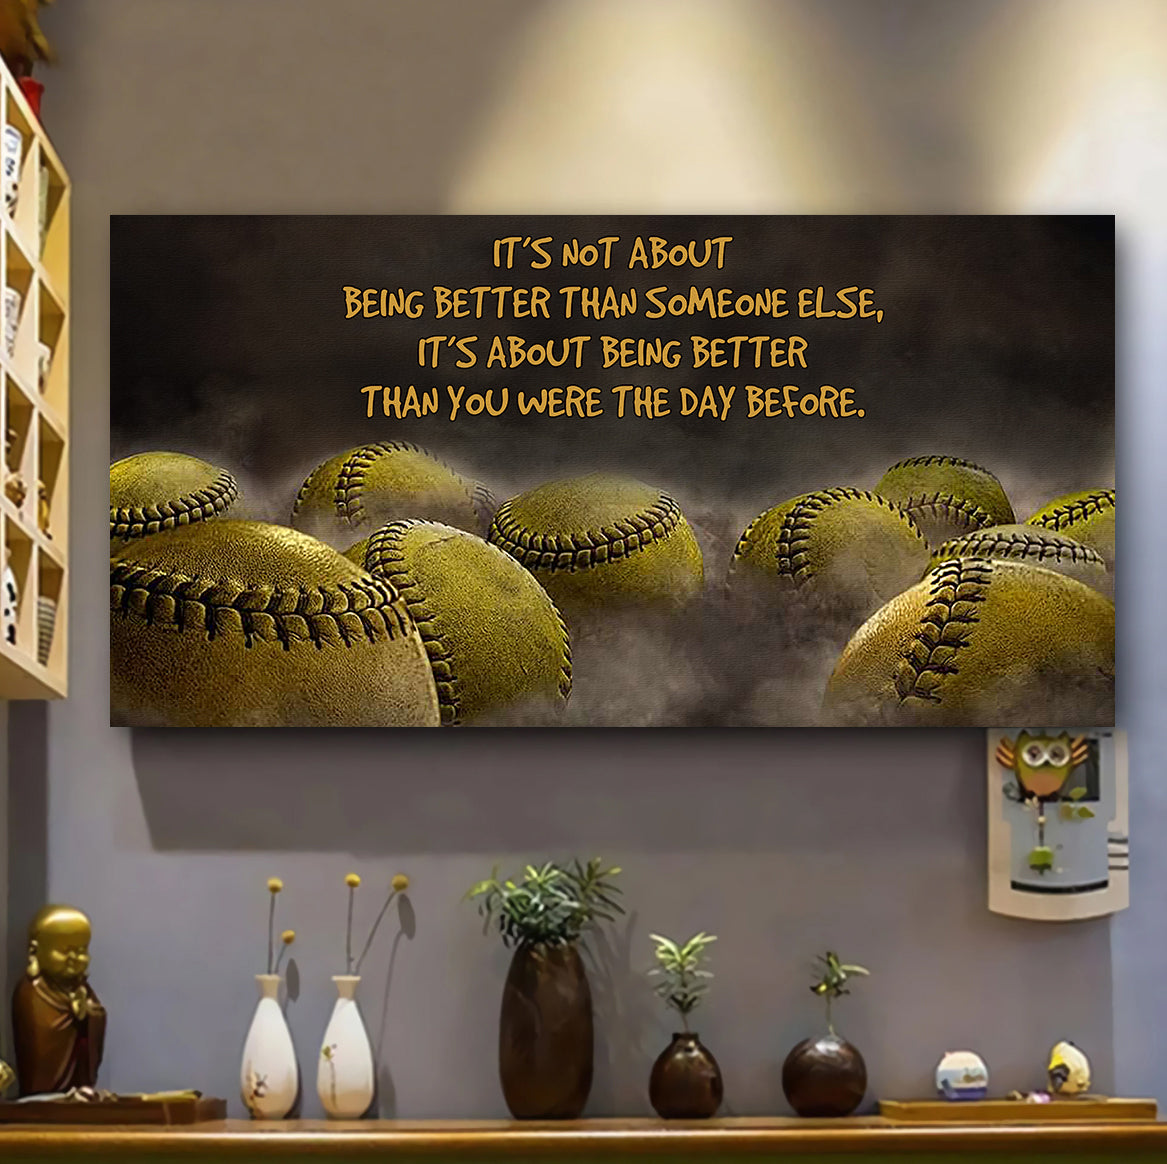 (LP315) Customizable softball Poster, Canvas – It's not about. FREE SHIPPING ON ORDERS OVER $75